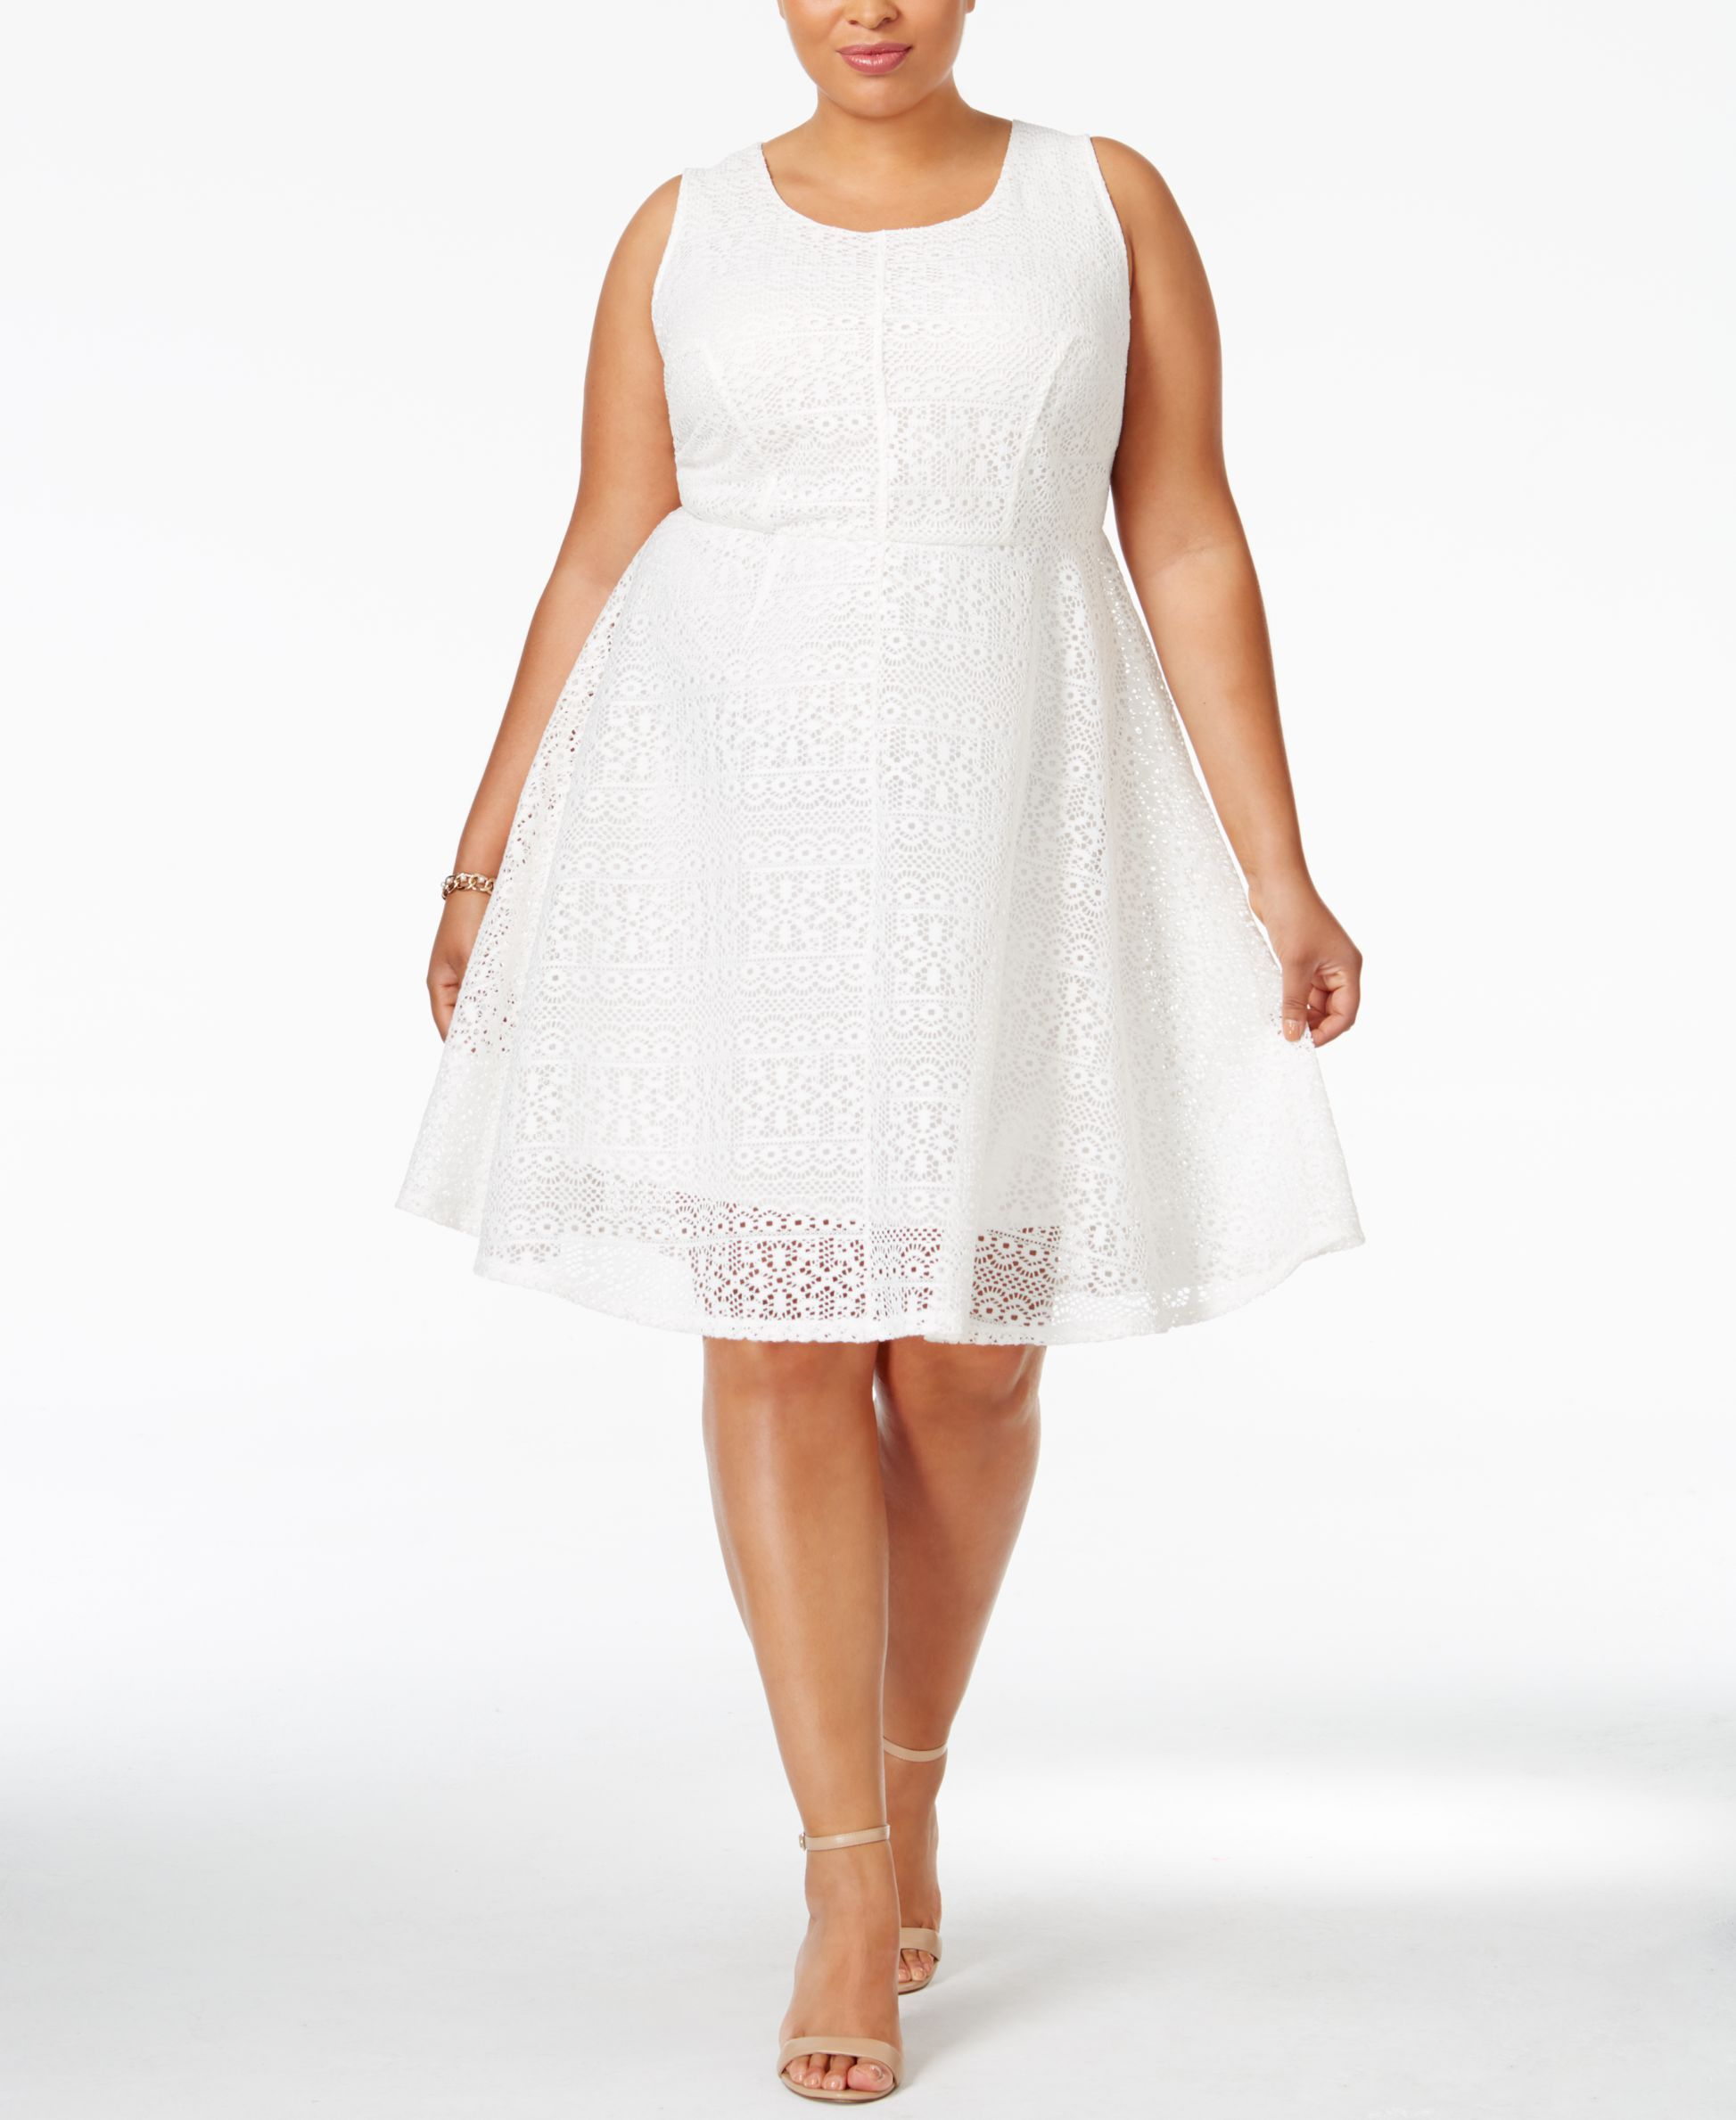 Ny Collection Plus Size Sleeveless Lace Fit Flare Dress Dresses Plus Sizes Macy S Fit Flare Dress Dresses Fit Flare [ 2378 x 1947 Pixel ]